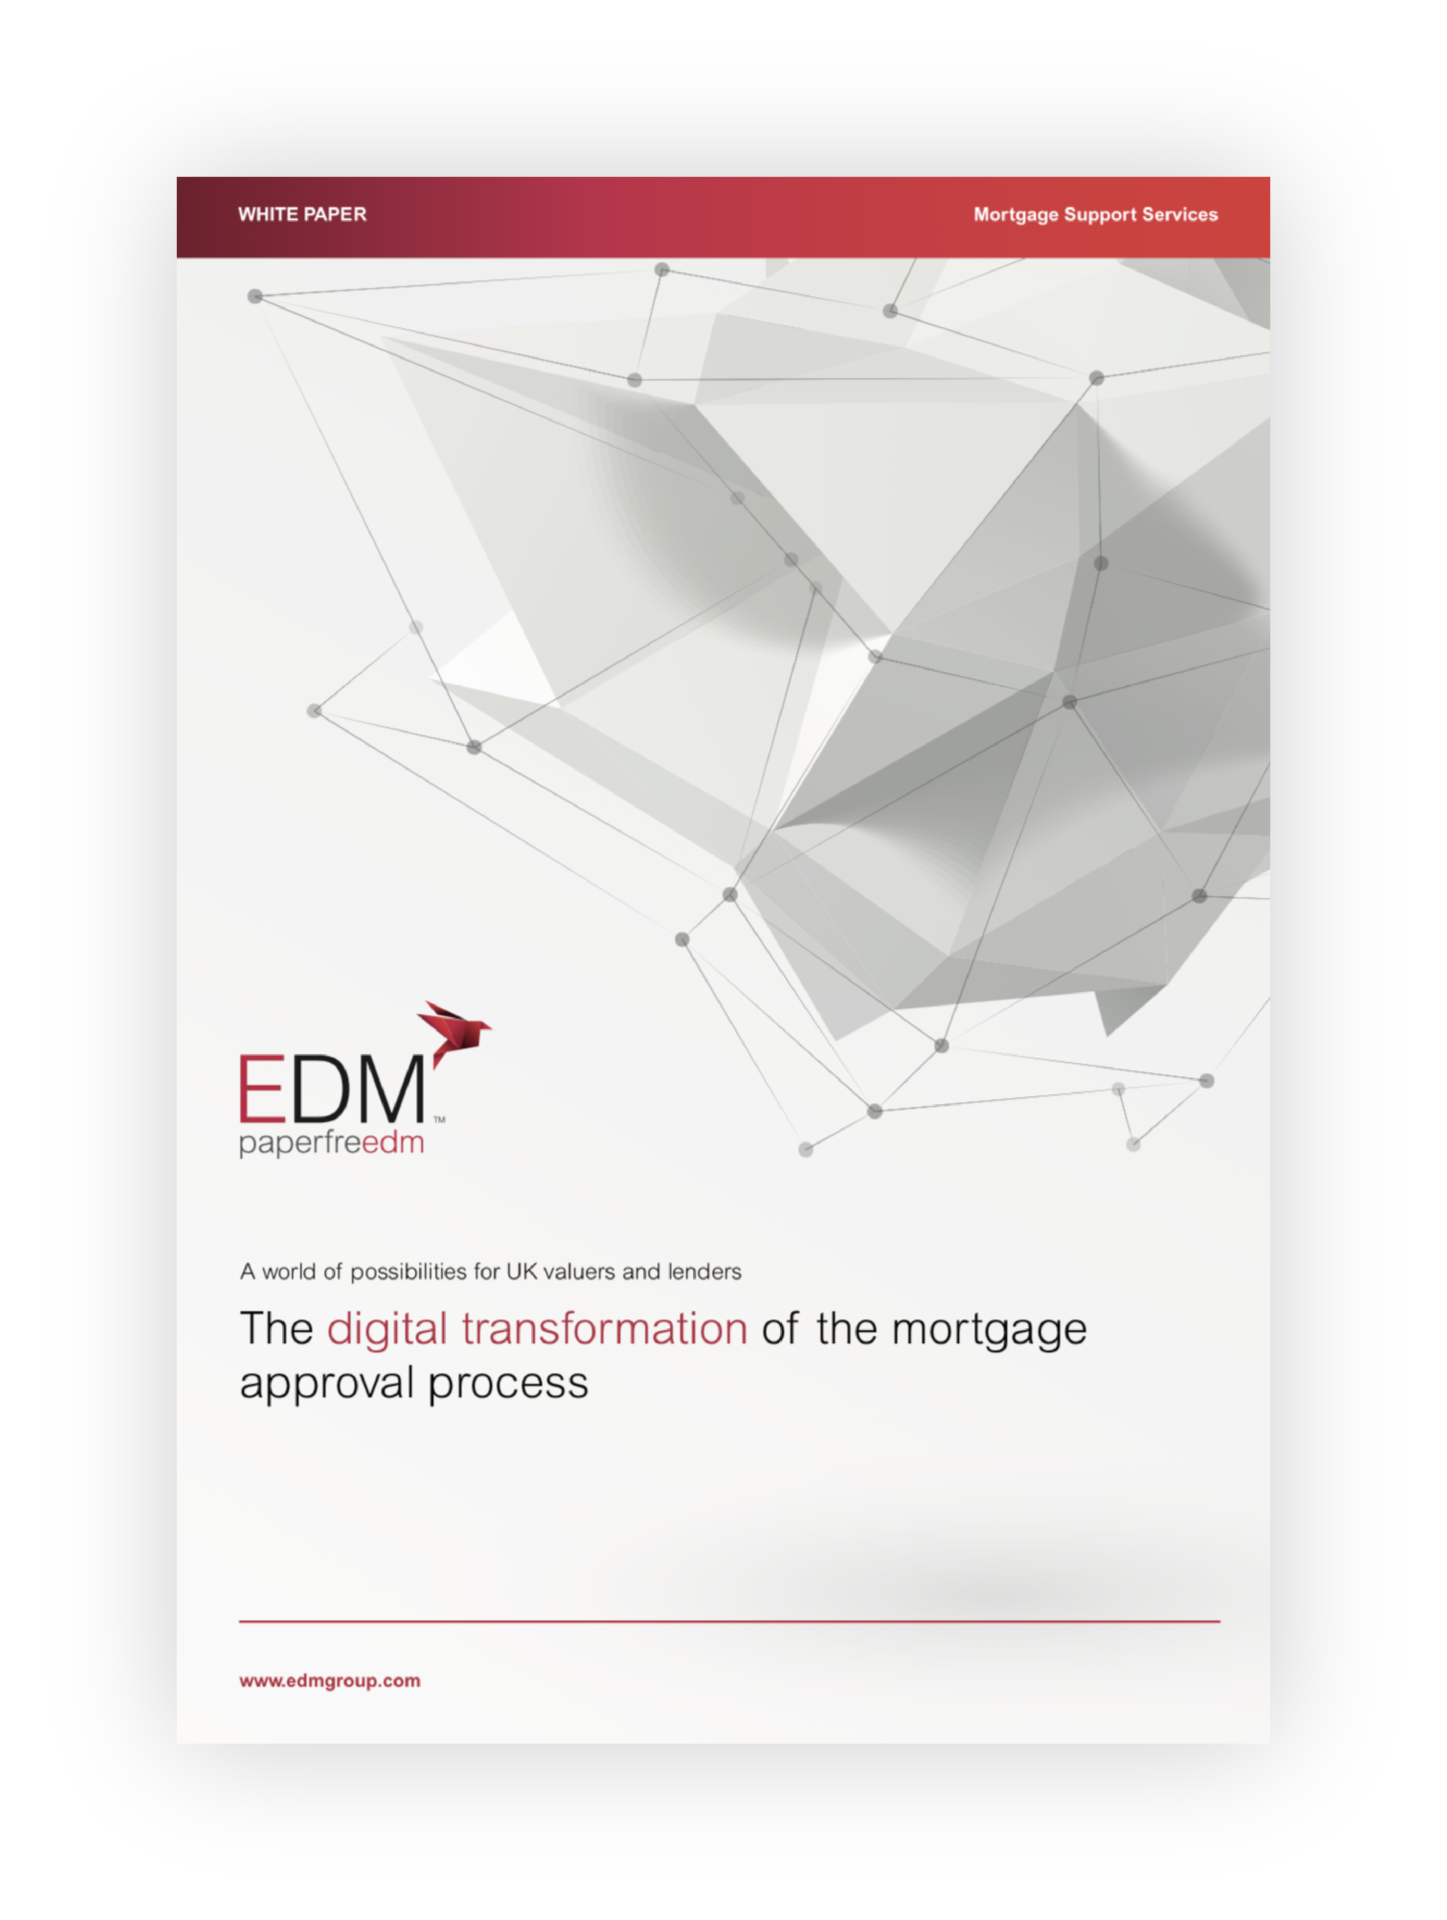 the-digital-transformation-of-the-mortgage-approval-process2-1447x1920